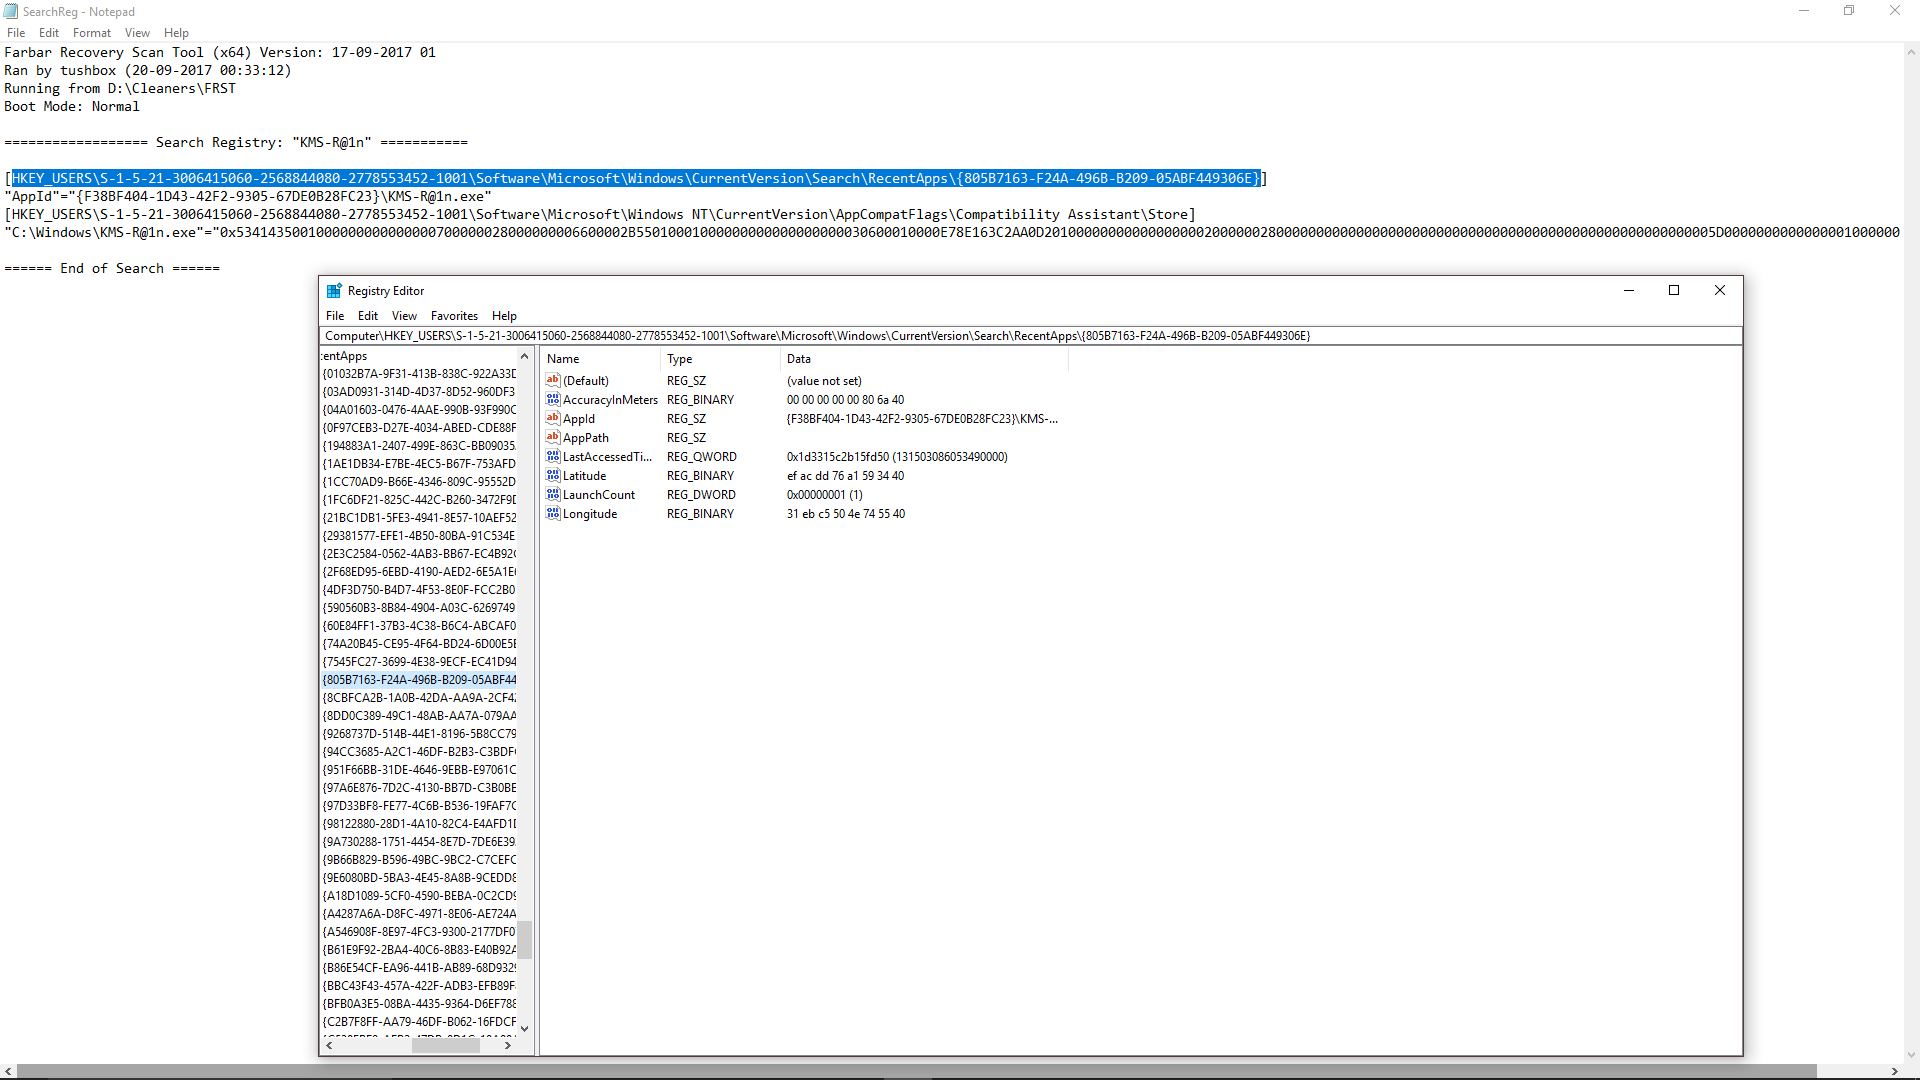 Removal of KMS-R@1n (how-to?) - Resolved Malware Removal